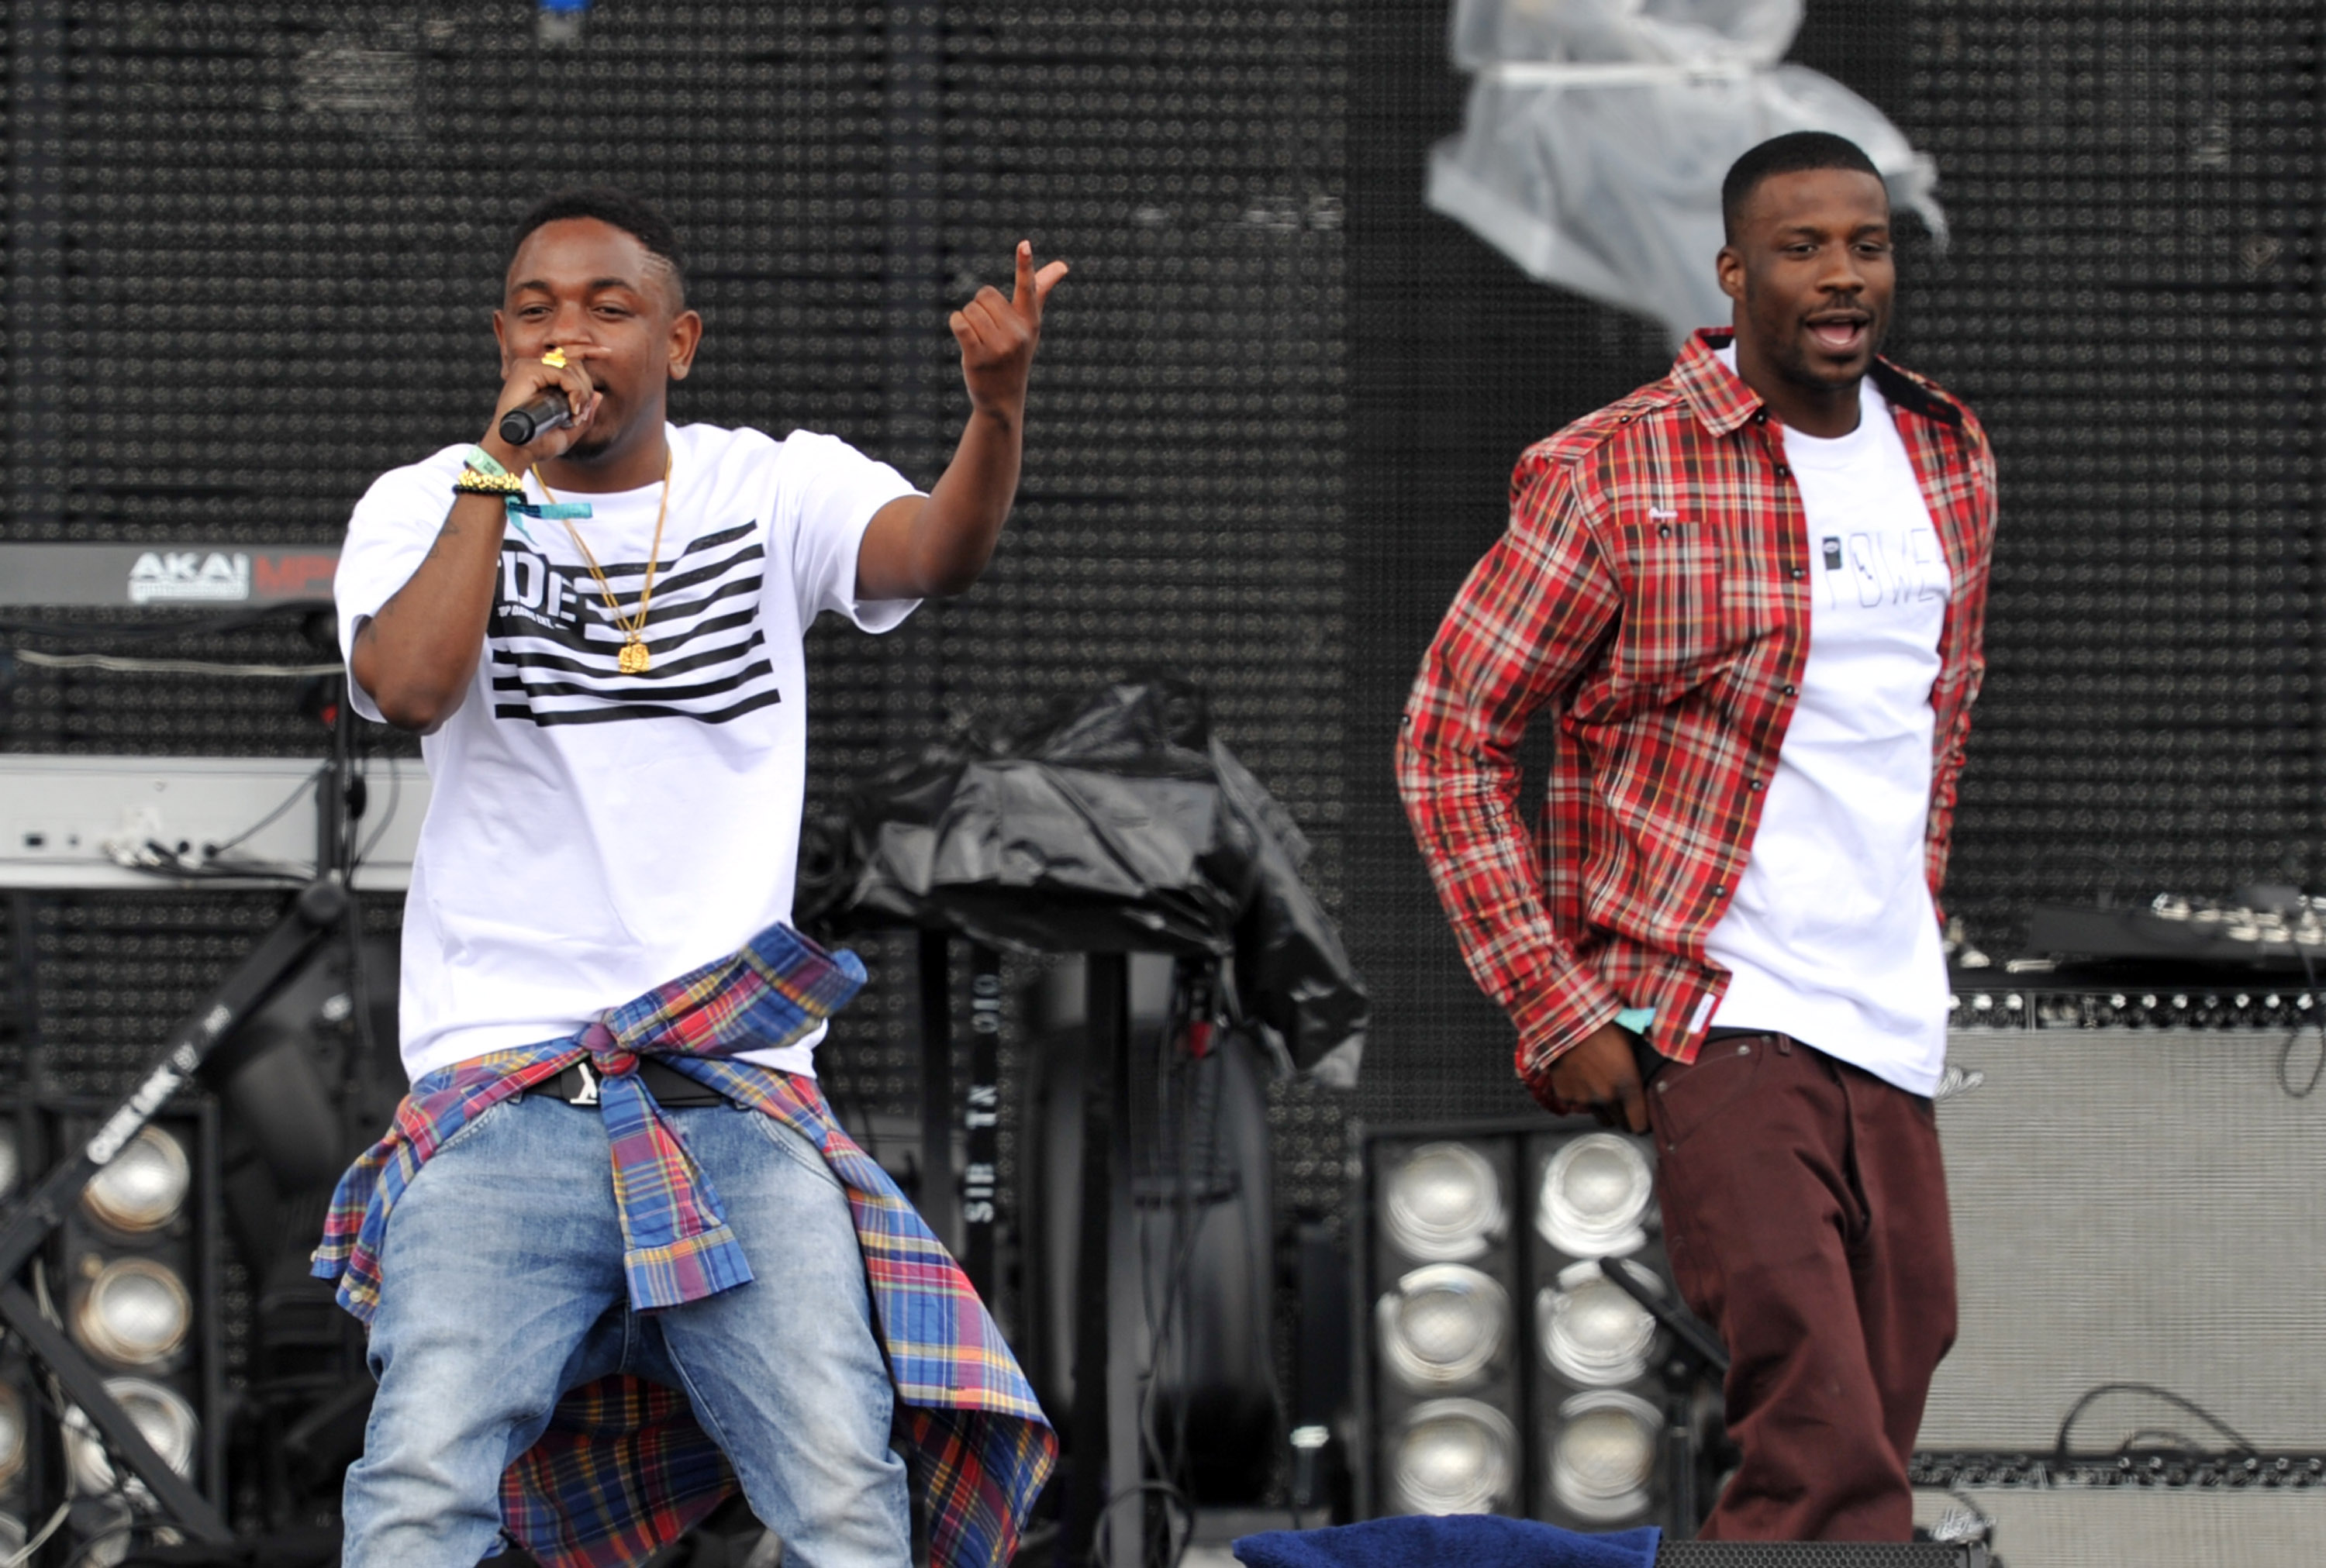 INDIO, CA - APRIL 13:  Rappers Kendrick Lamar (L) and Jay Rock perform onstage during day 1 of the 2012 Coachella Valley Music & Arts Festival at the Empire Polo Field on April 13, 2012 in Indio, California.  (Photo by Kevin Winter/Getty Images for Coachella)